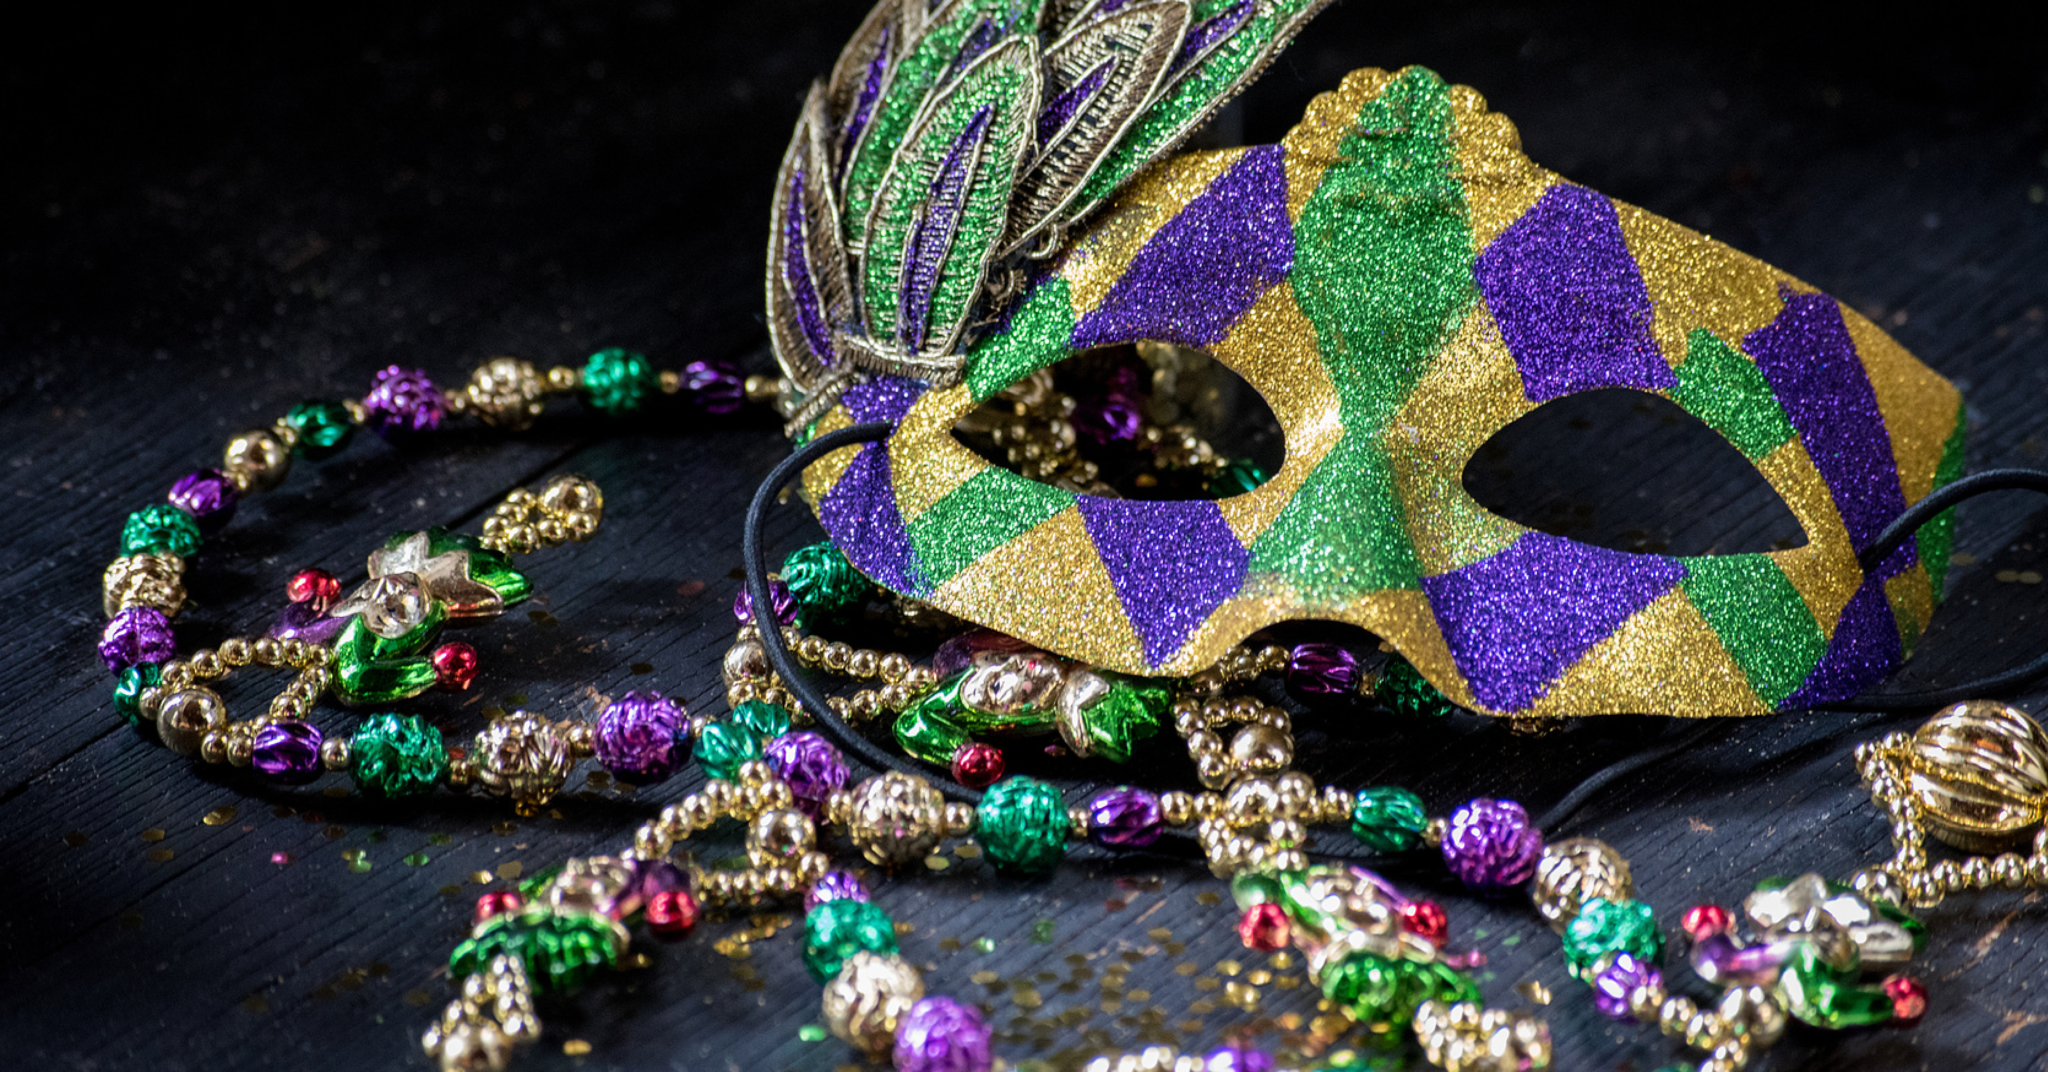 Mardi Gras mask and beads lying on a table